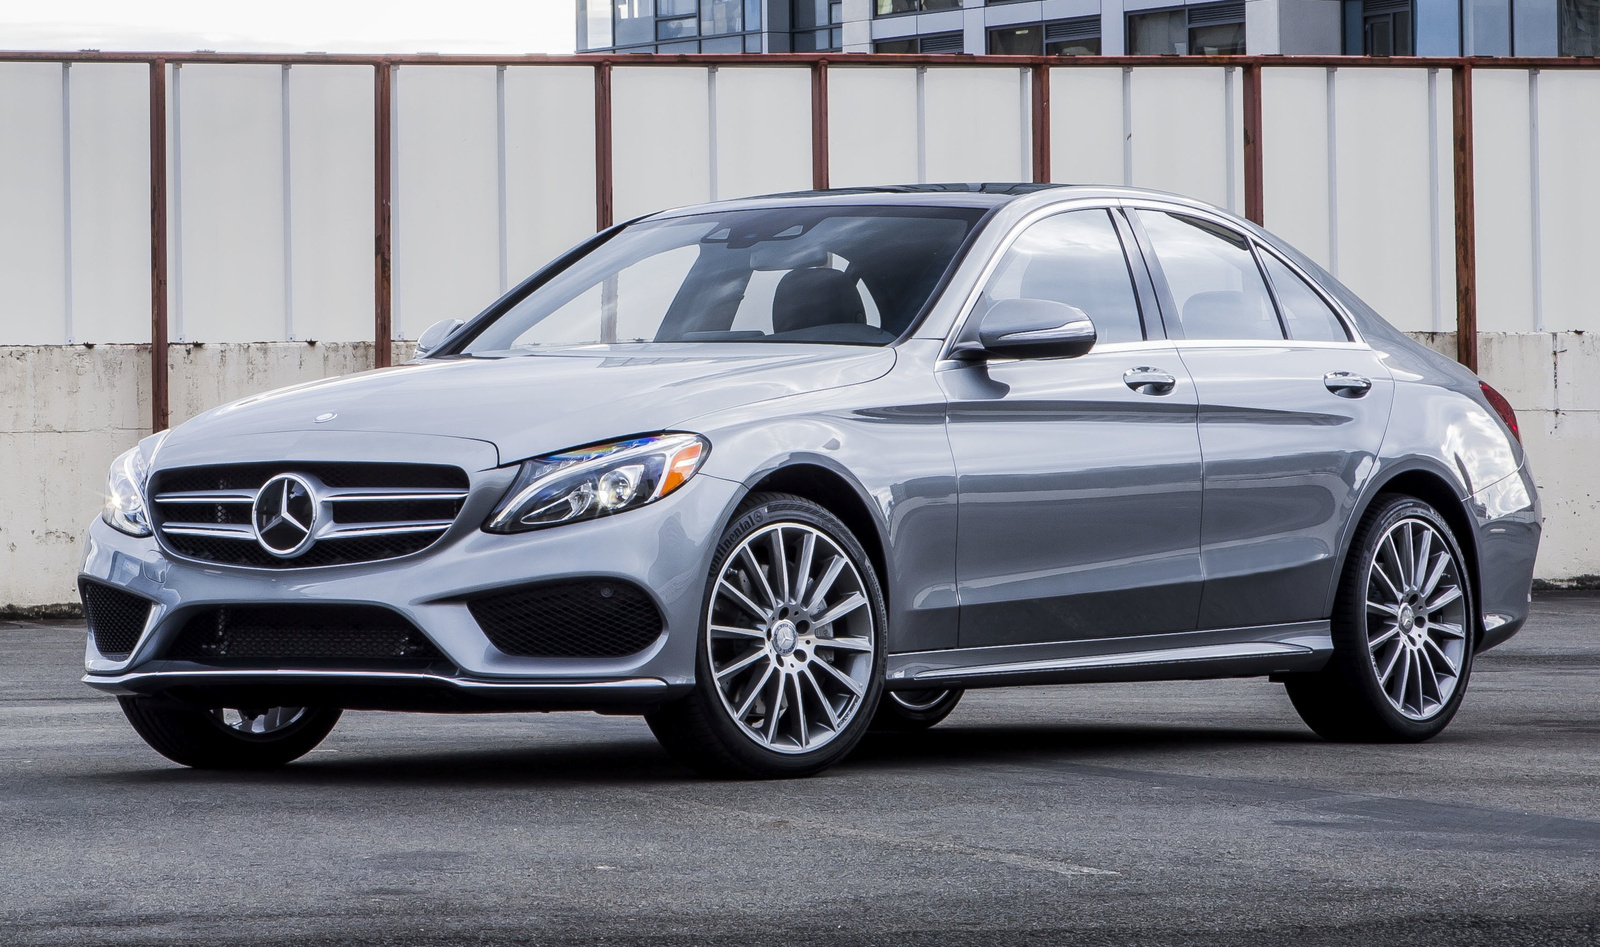 2015 2016 2017 mercedes benz c class for sale in your for Average insurance cost for mercedes benz c300